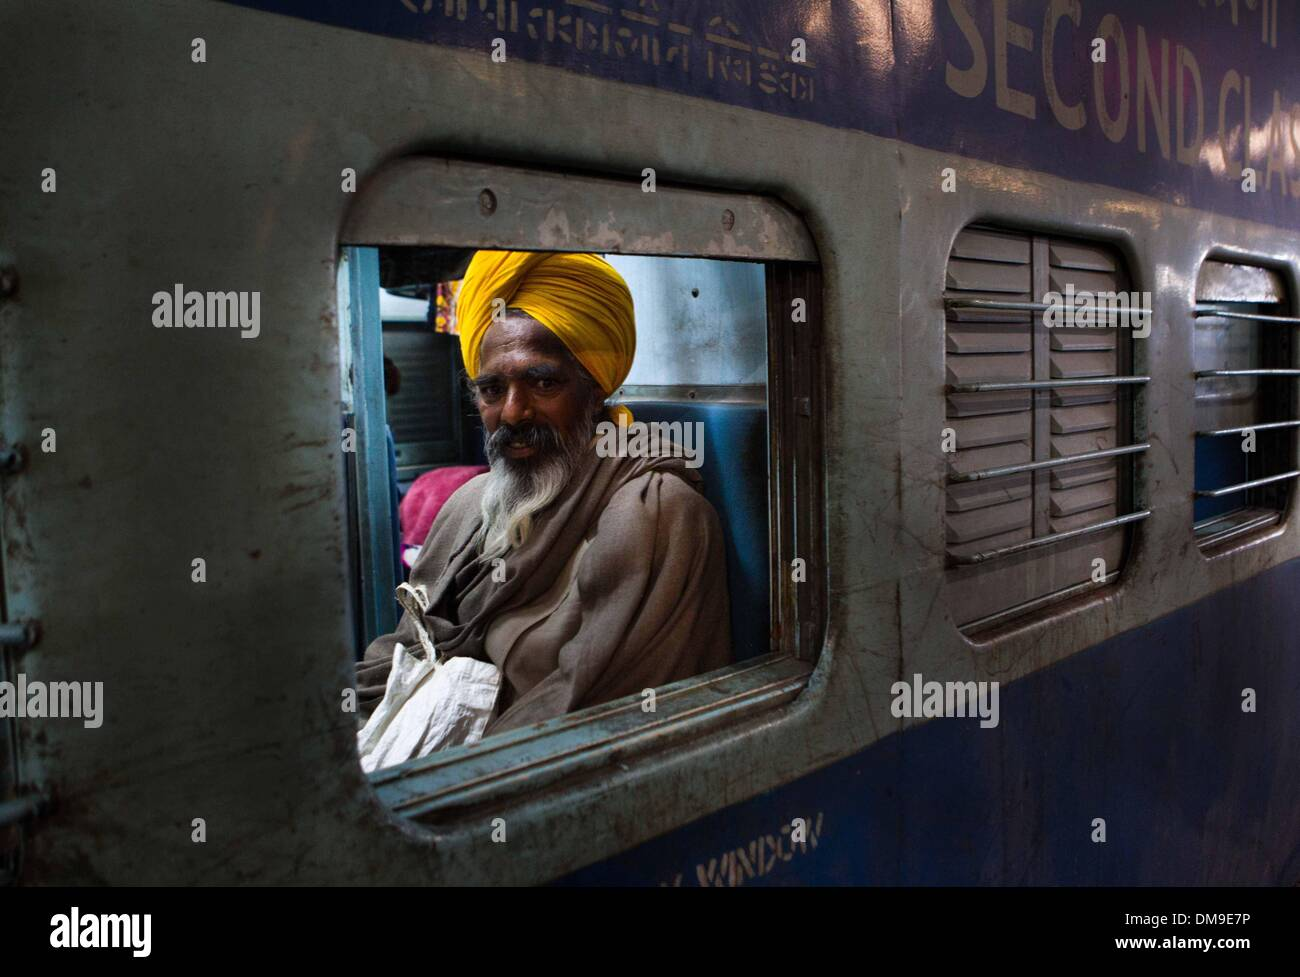 (131213) -- PUNJAB, Dec. 12, 2013 (Xinhua) -- A Punjabi cancer patient sits on a train at the railway station of Stock Photo